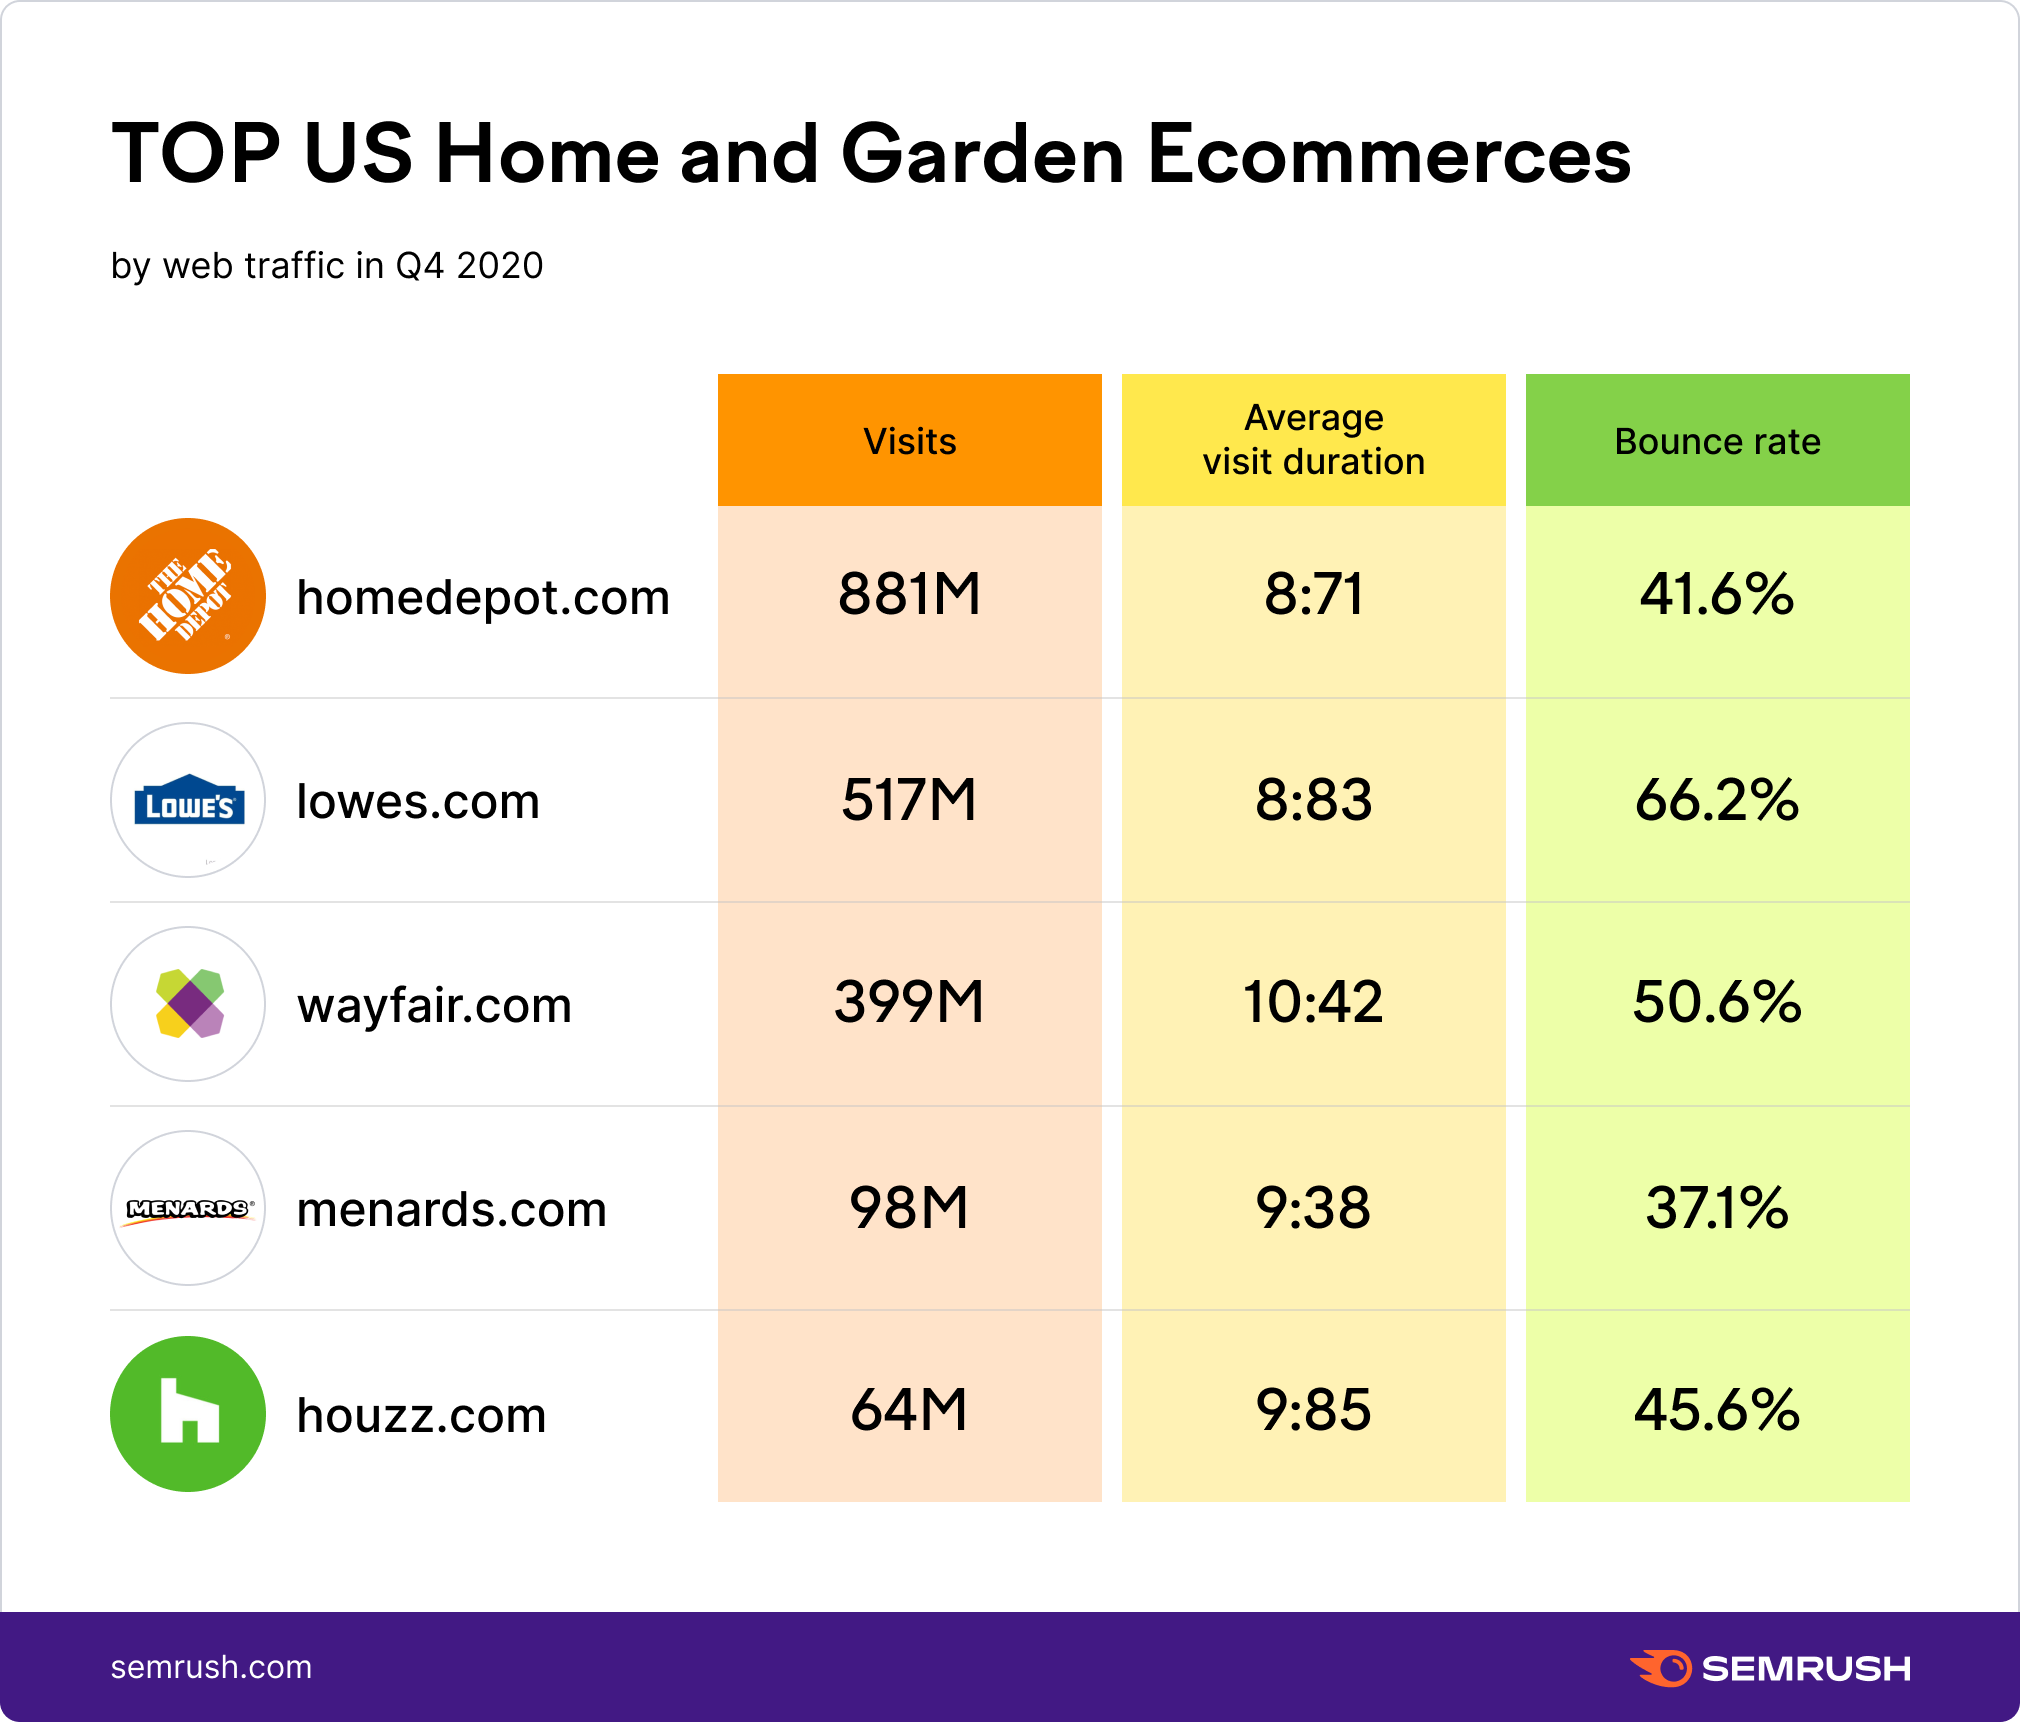 Top US Home and Garden eCommerces